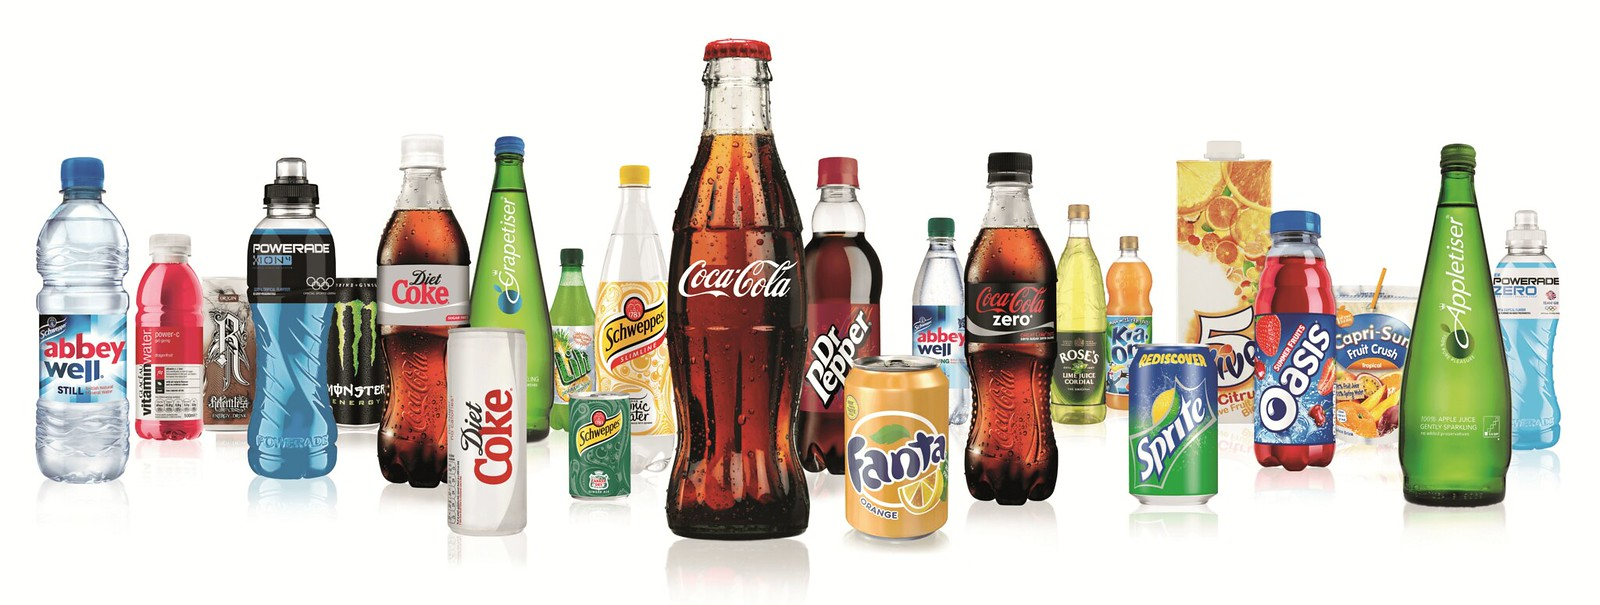 the advantades and disadvantages of of the coca cola of ownership Advantages and disadvantages of private limited company: according to under section 2 (28) of the companies ordinance 1984, a private limited company means a company which by its articles of association.